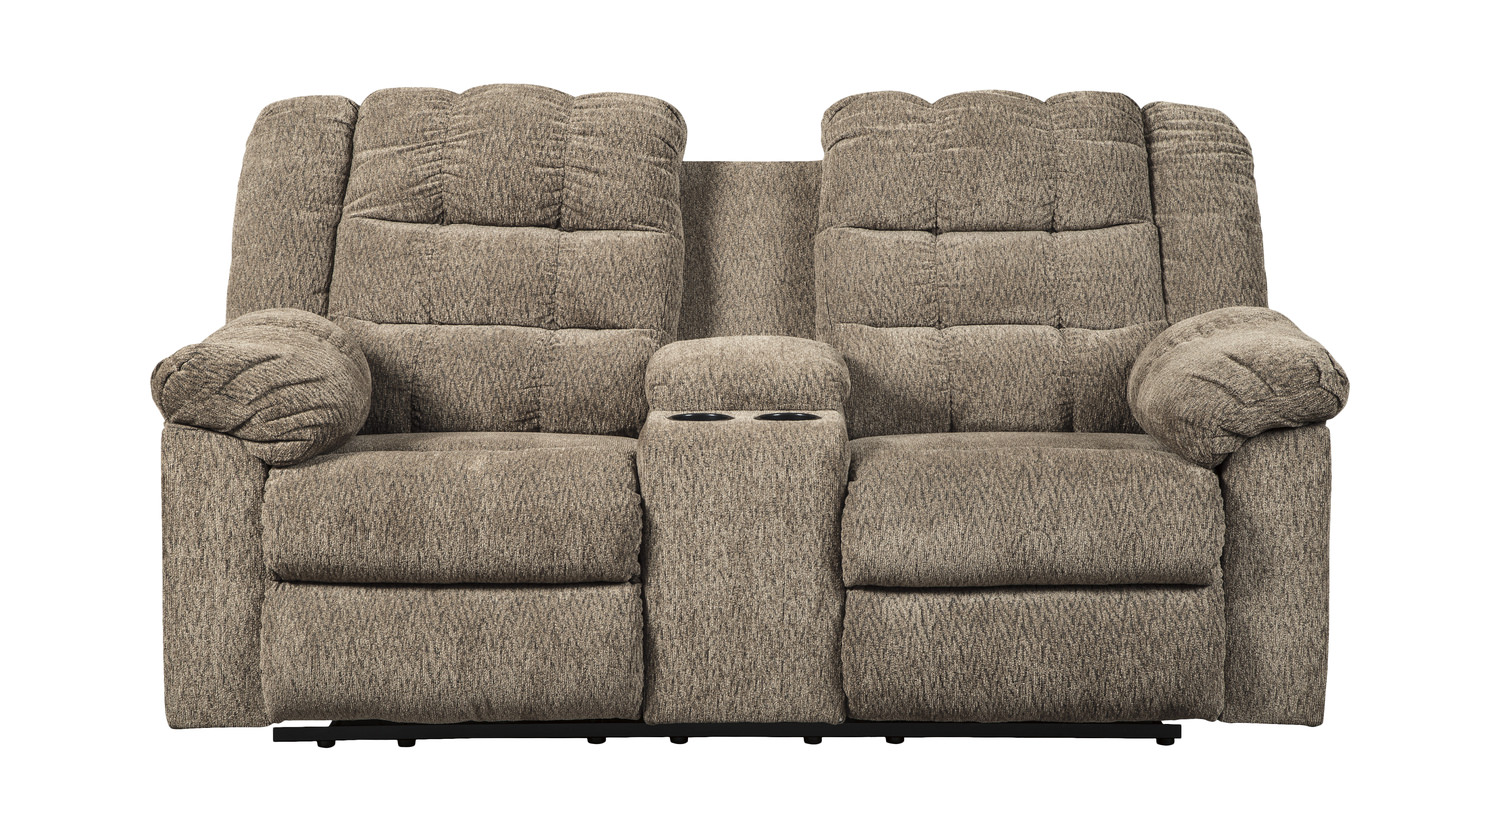 Tremendous Clyde Reclining Loveseat With Console Gamerscity Chair Design For Home Gamerscityorg